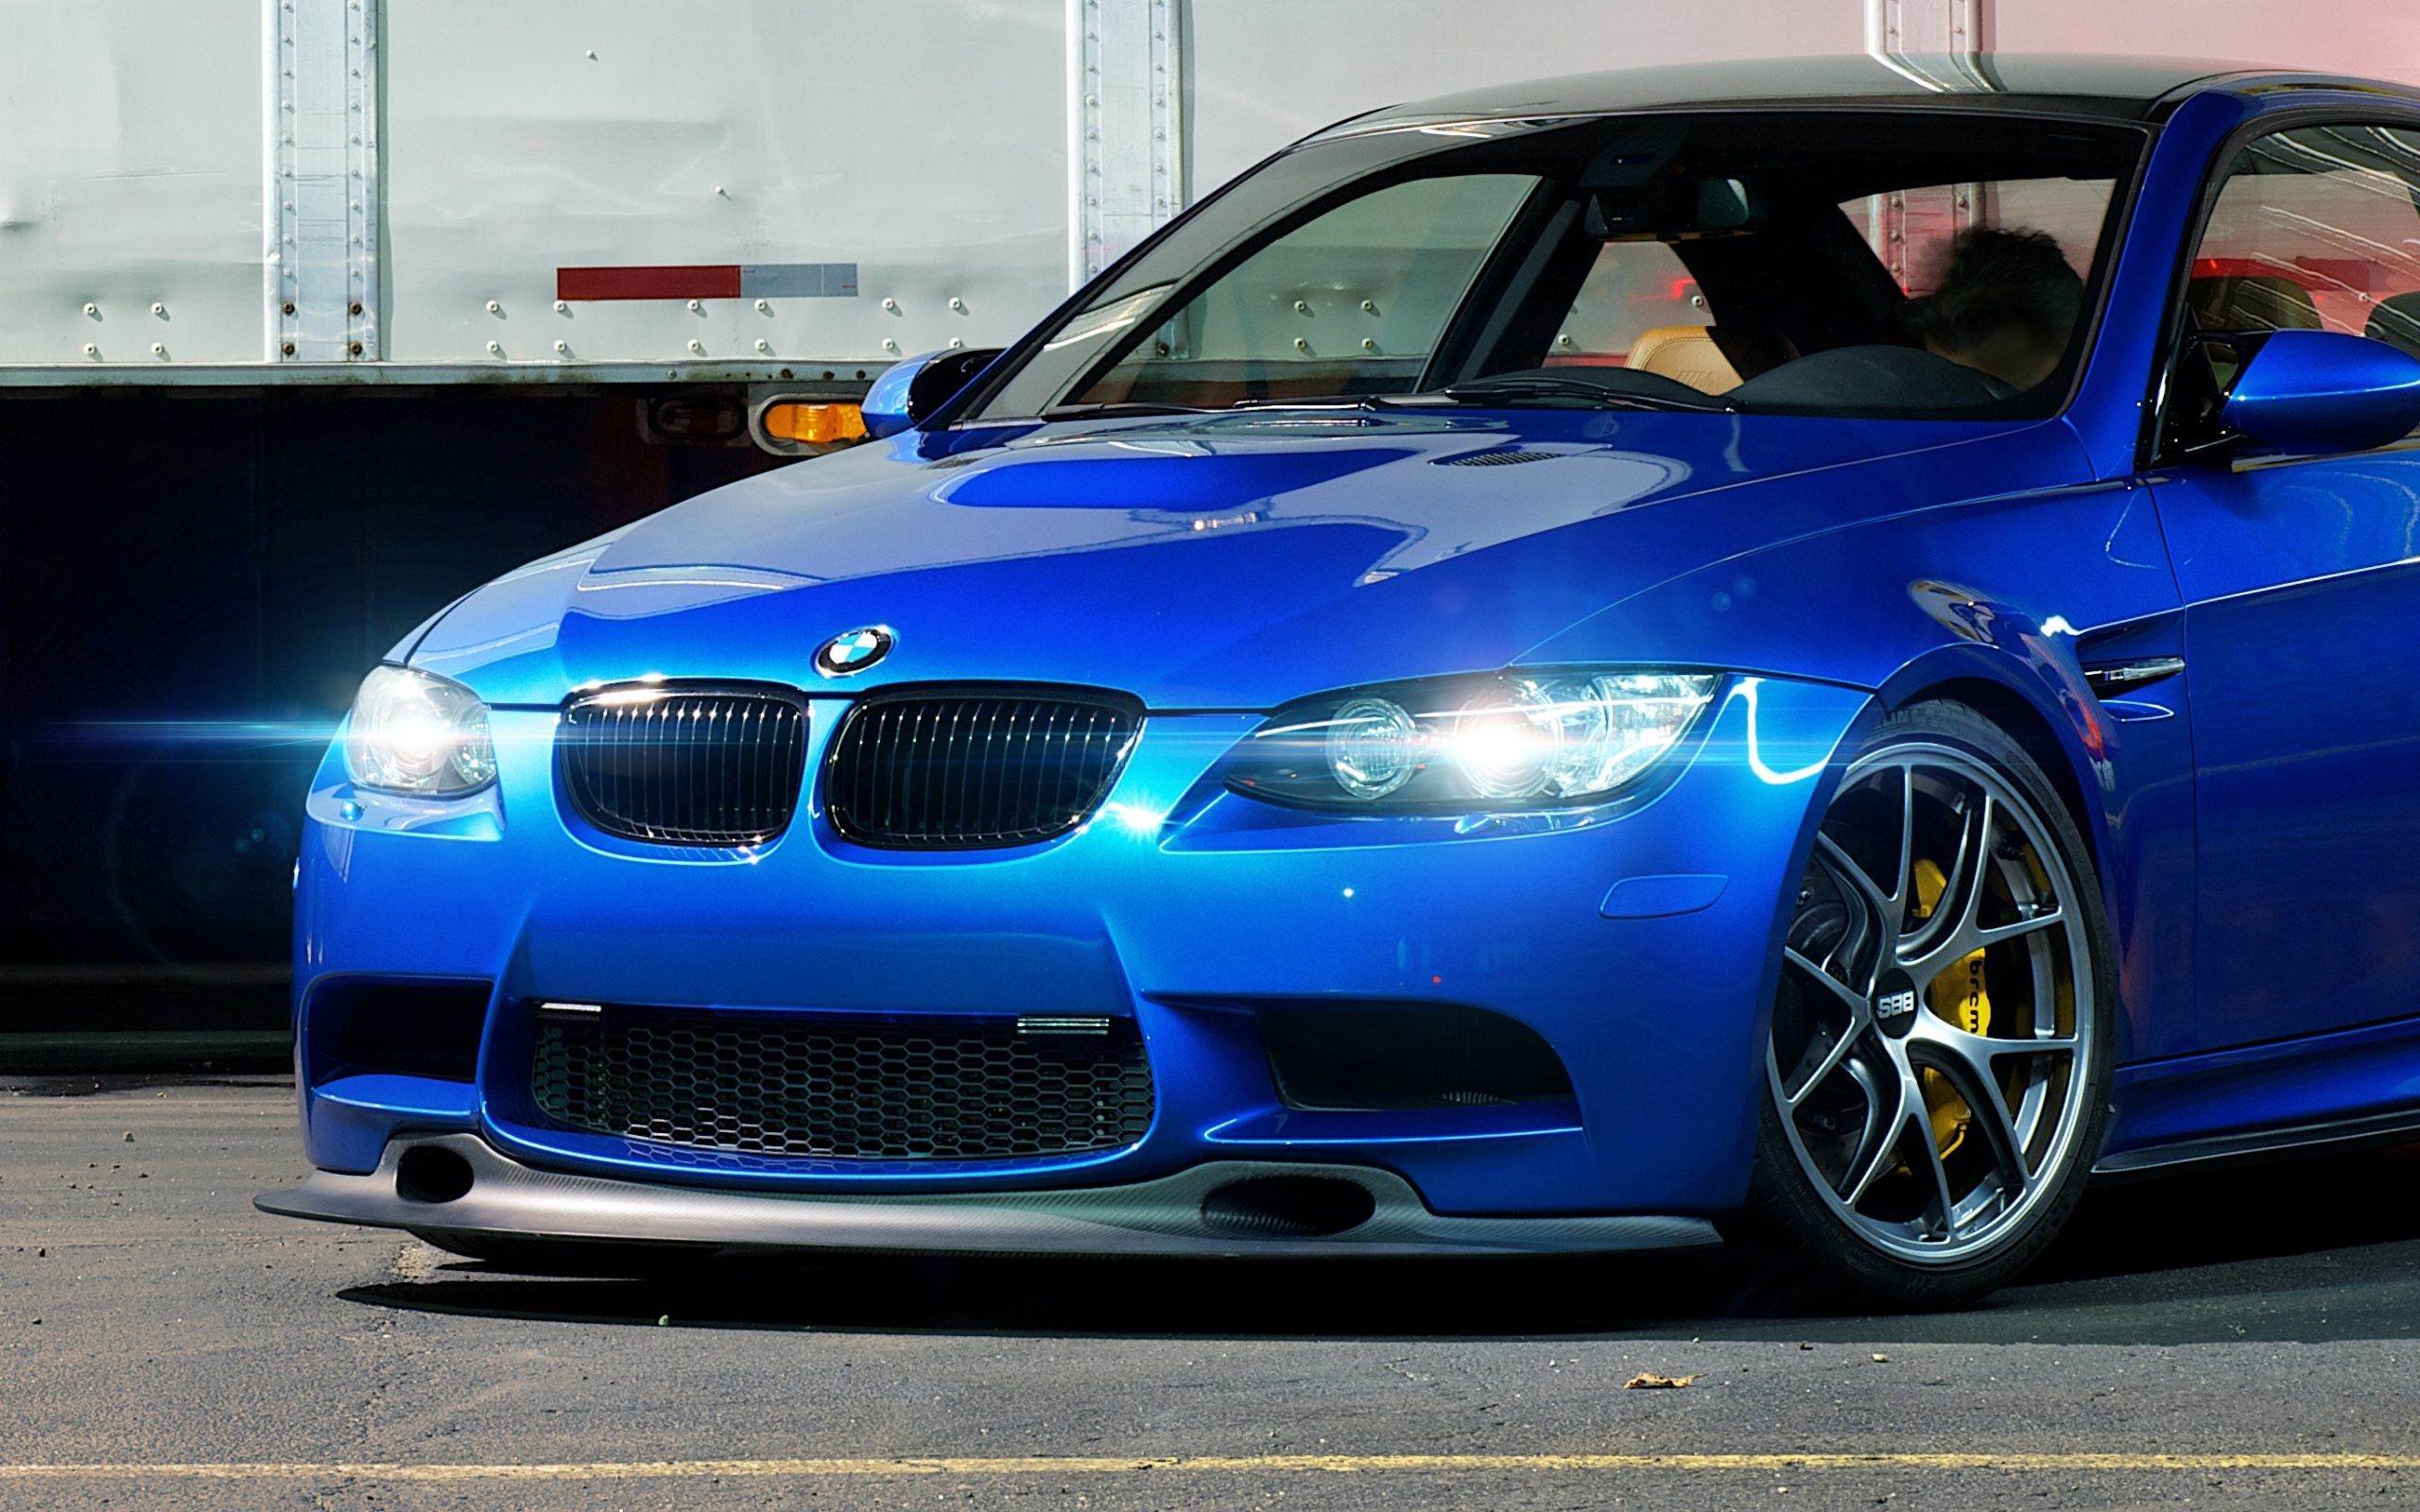 BMW M3 E92 Blue Car Wallpaper HD Download High Quality 2560x1600